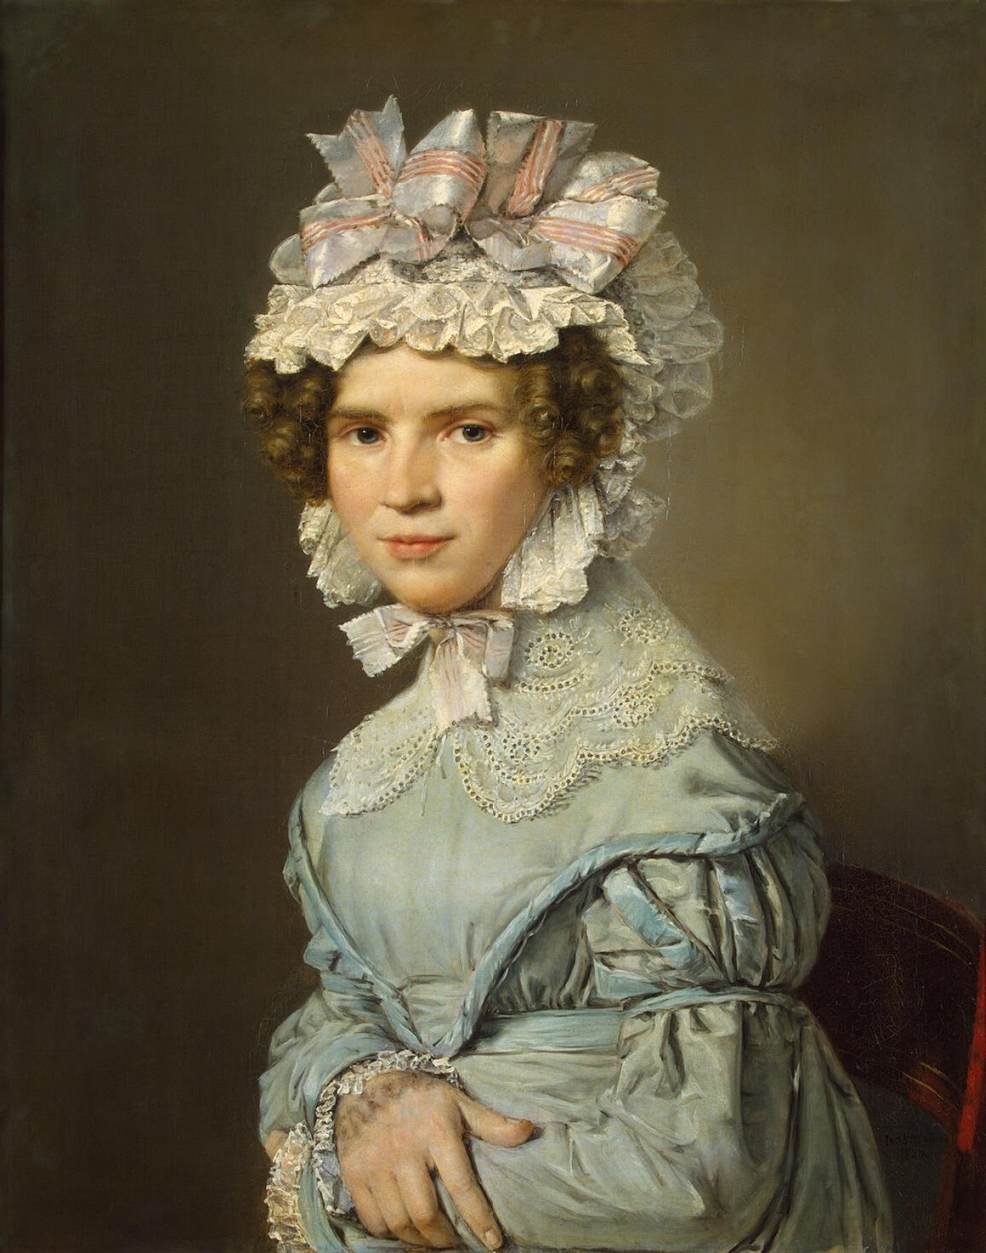 http://upload.wikimedia.org/wikipedia/commons/e/e6/Portrait_of_a_Lady_in_Blue_Dress_%28Christian_Albrecht_Jensen%29.jpg